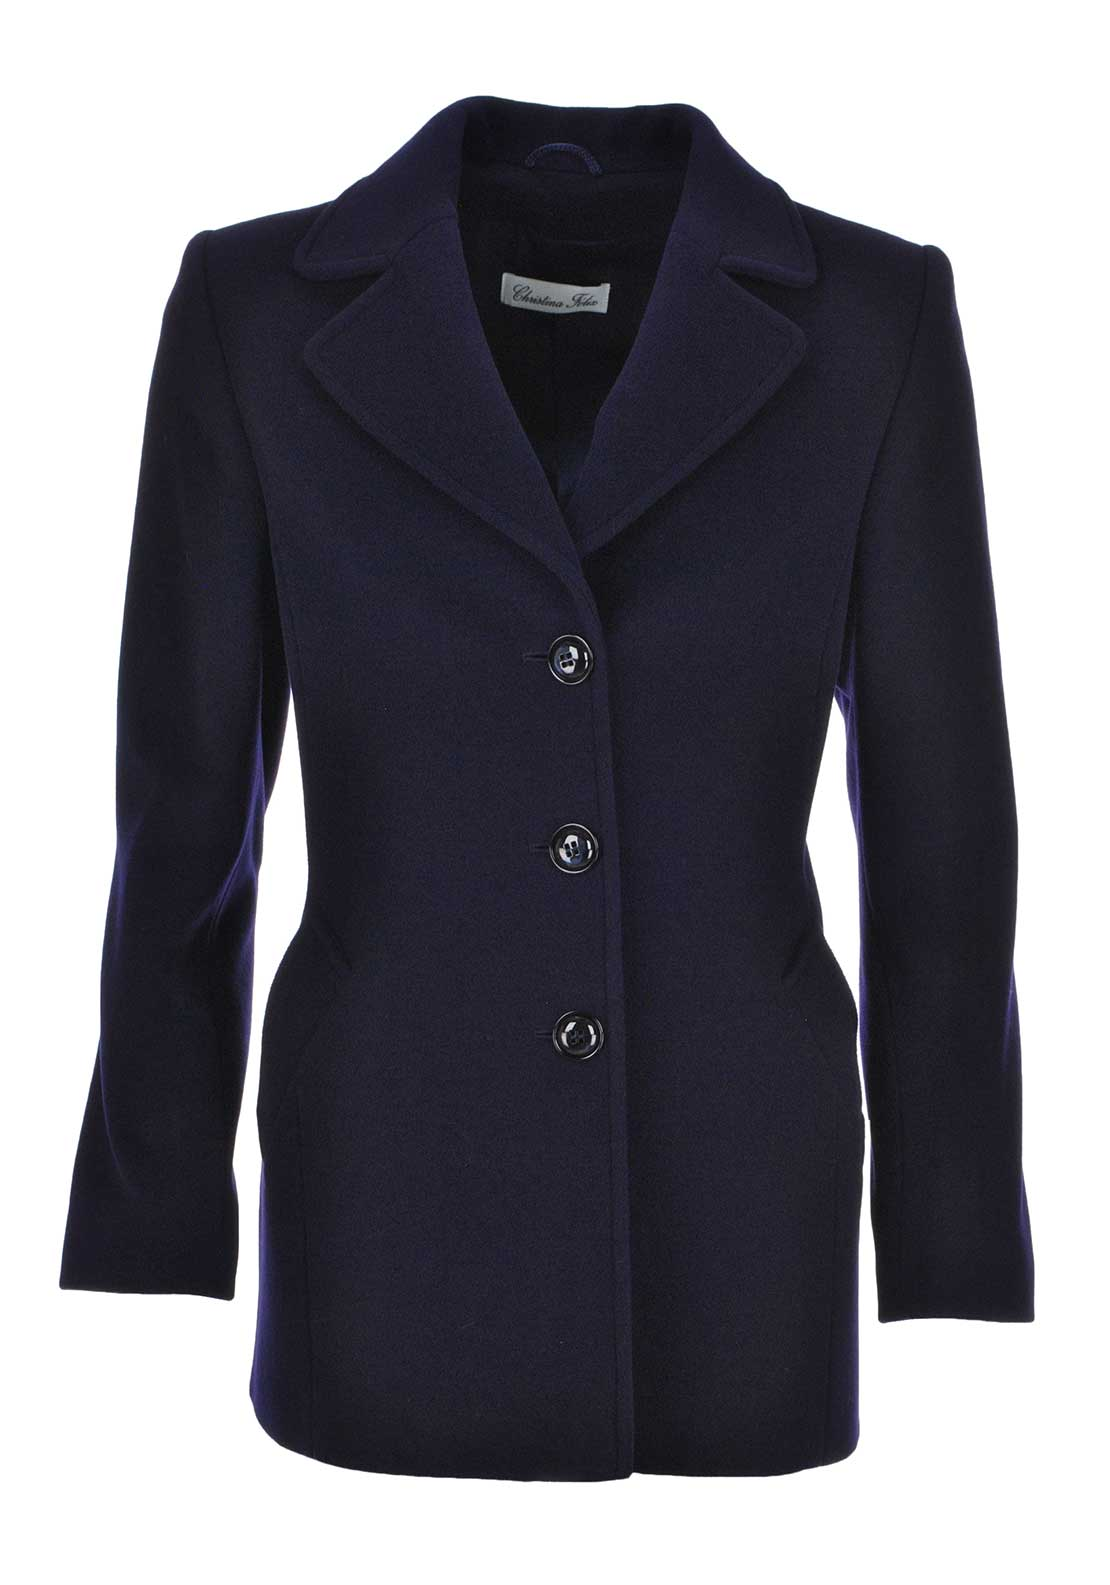 Christina Felix Wool and Cashmere Blend Single Breasted Pea Coat, Navy